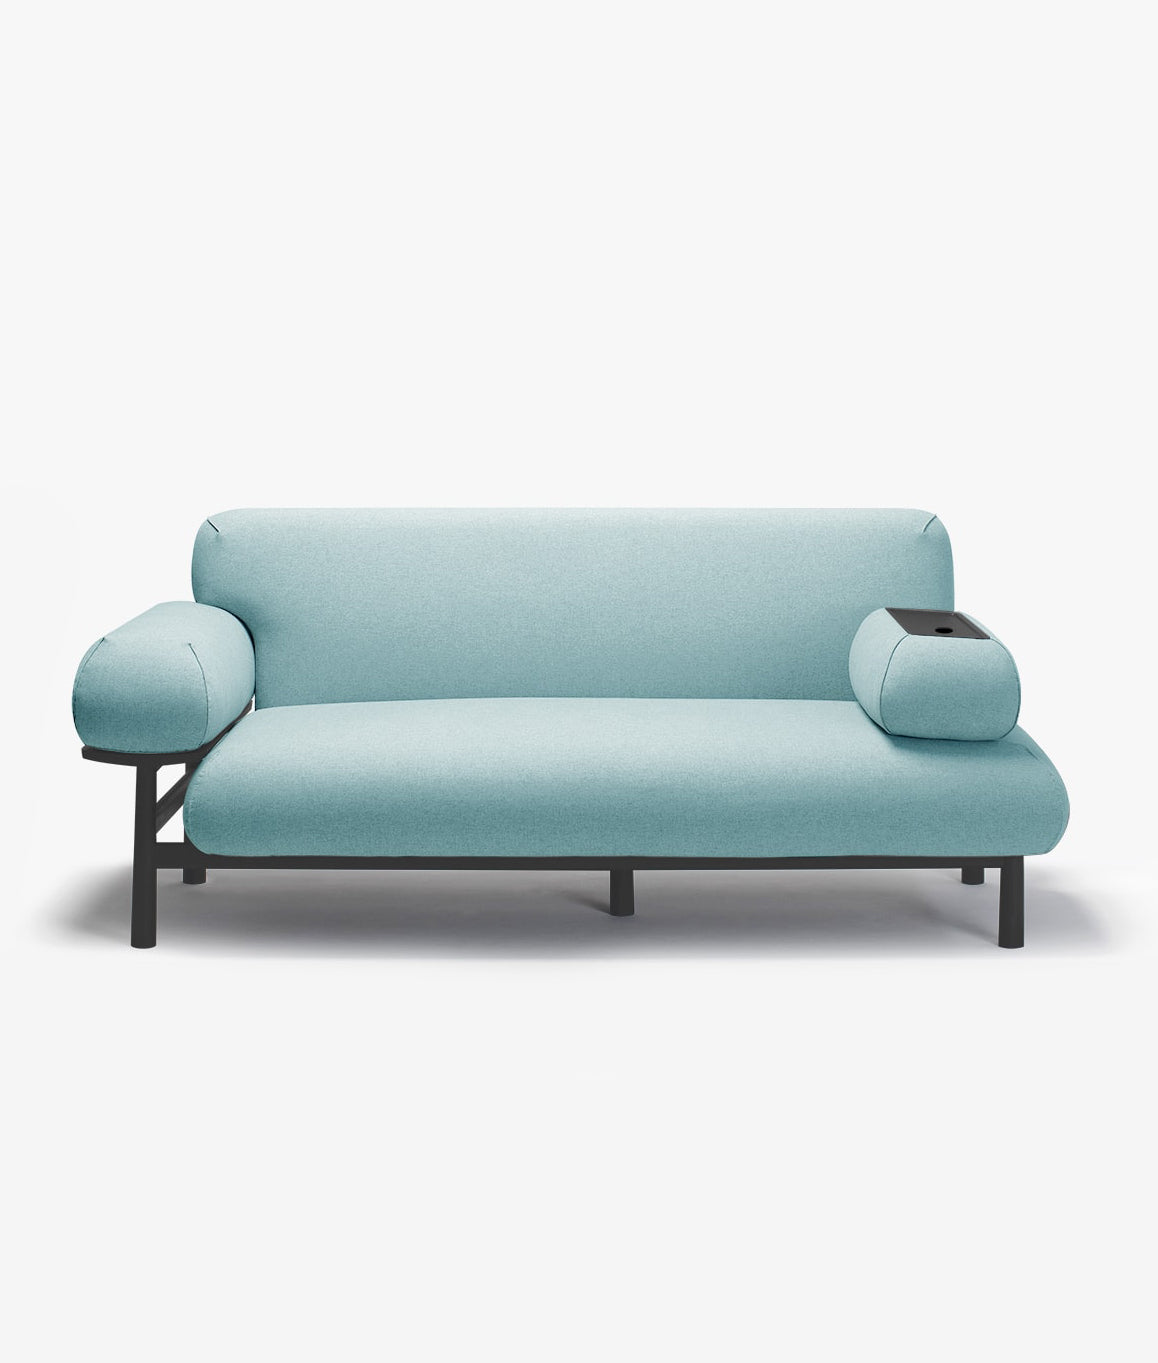 Ziinlife Together Sofa Absinthe Green